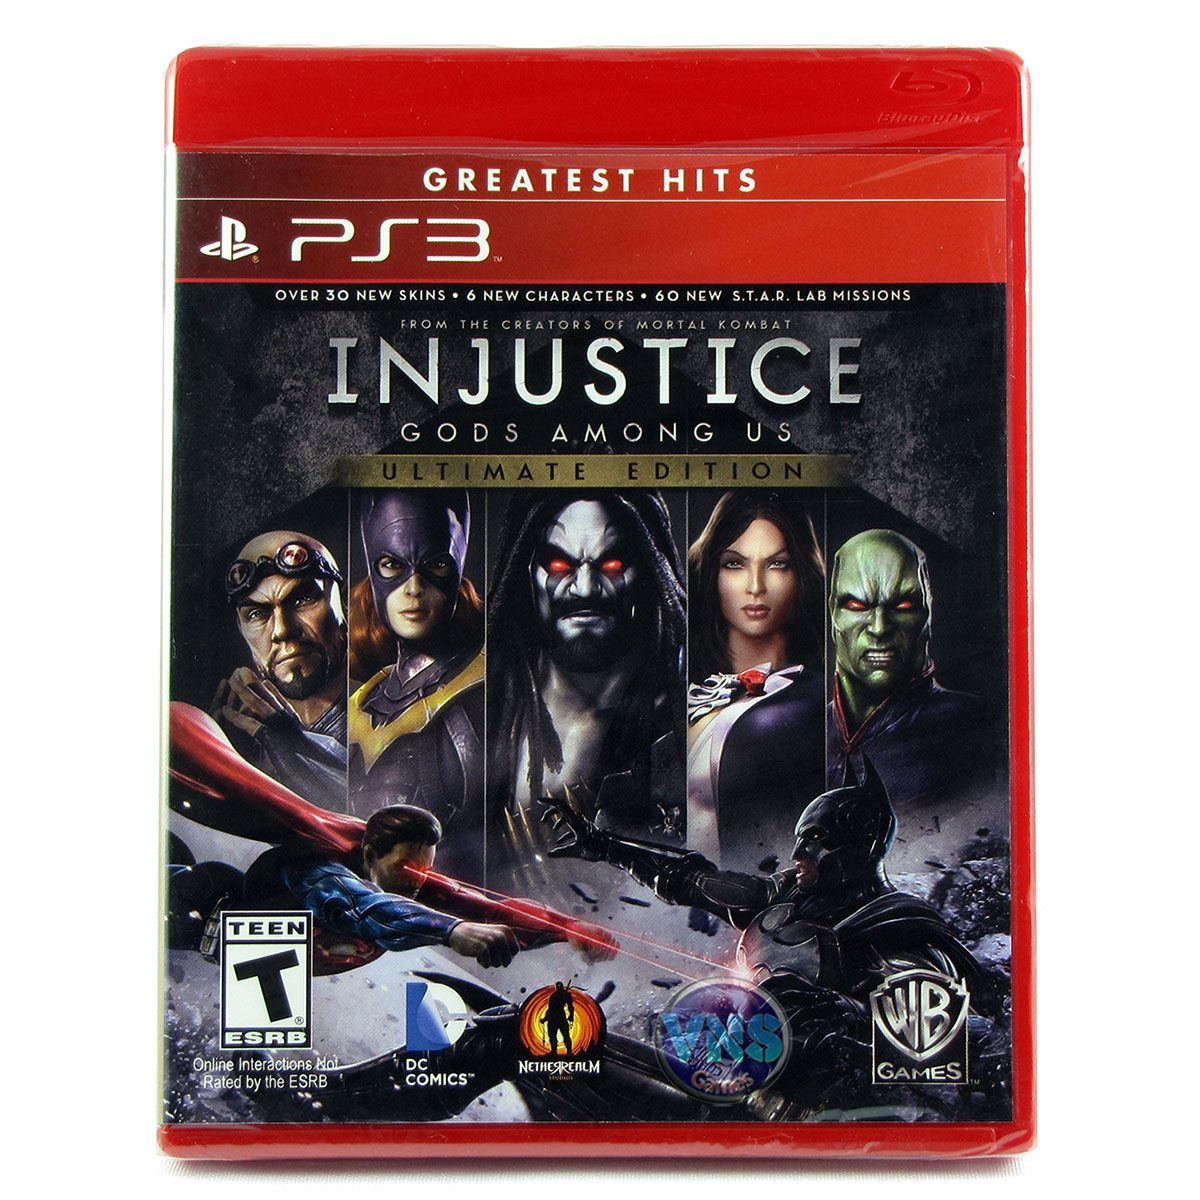 Injustice Gods Among Us - Ultimate Edition - PS3